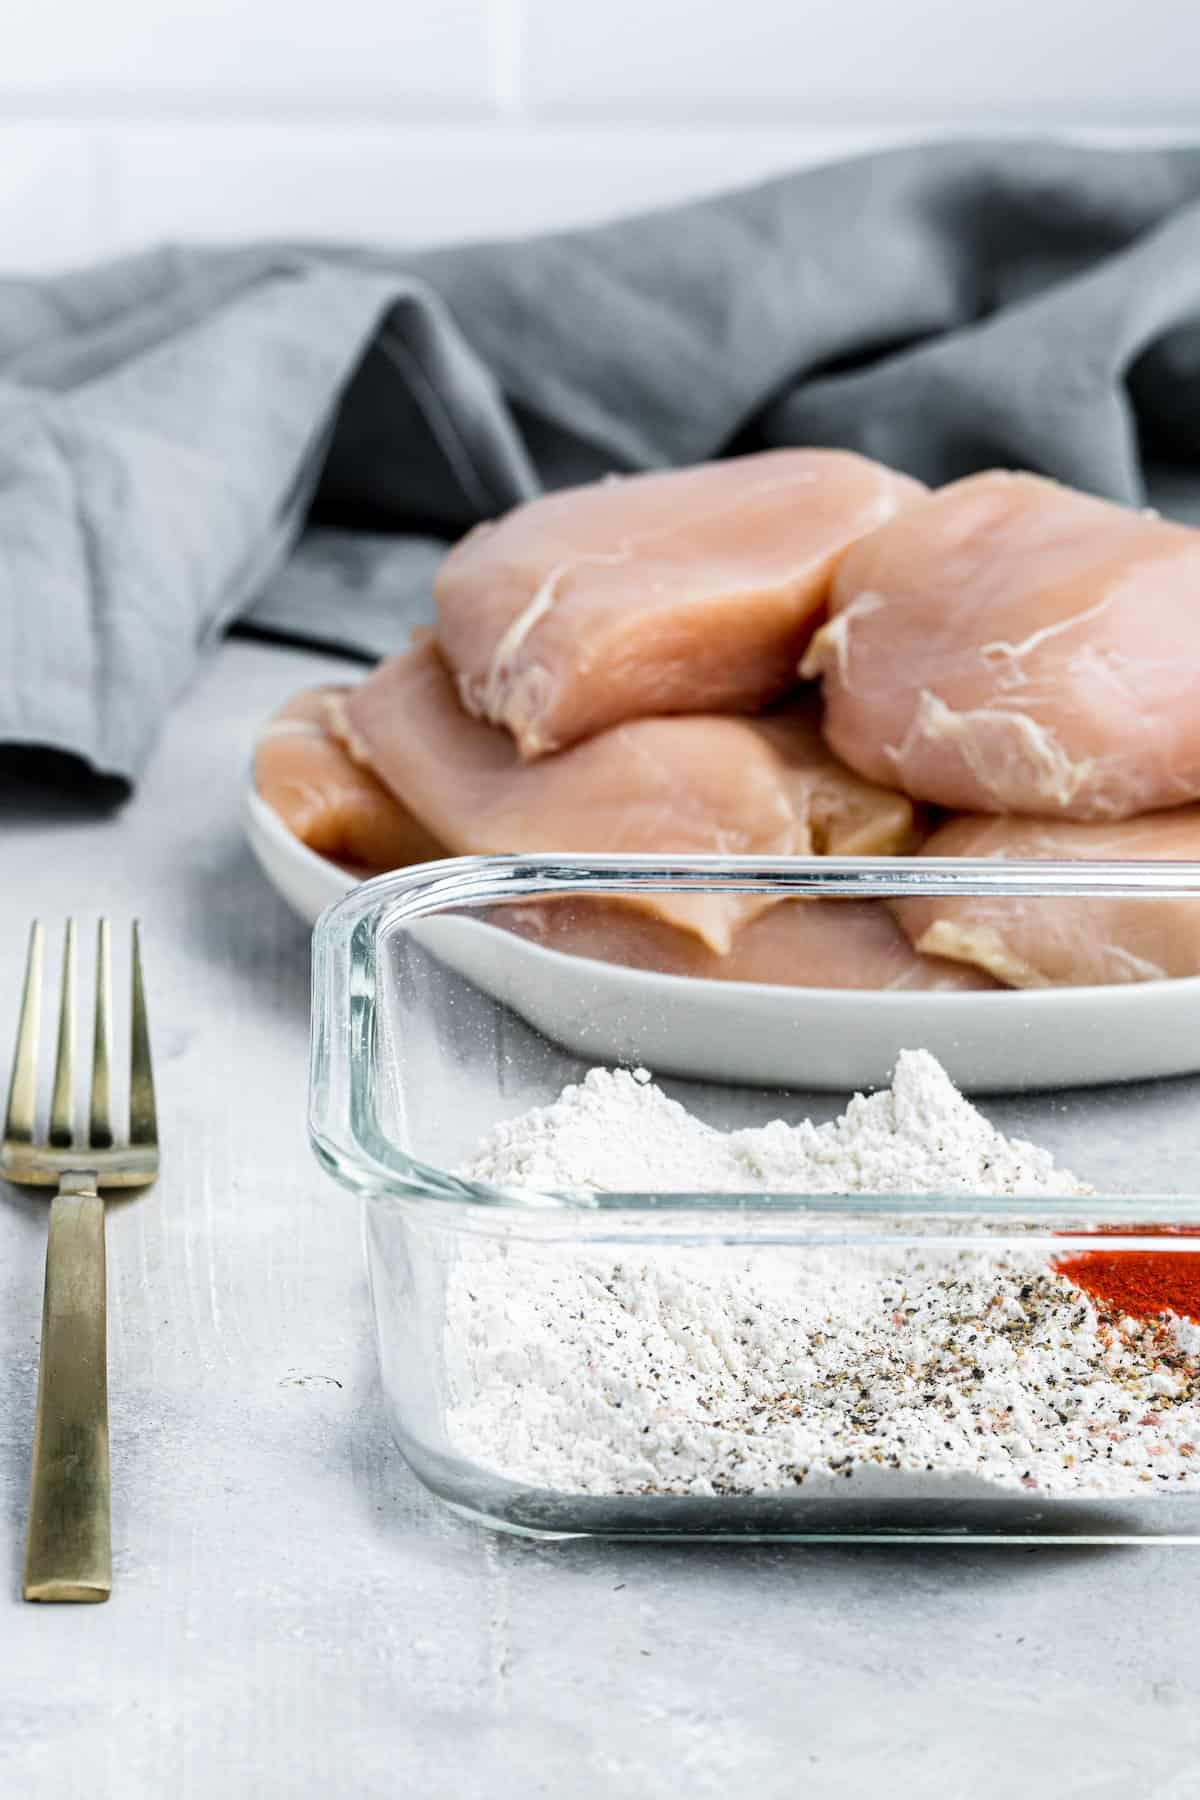 A Plate Full of Raw Chicken Breasts Beside a Baking Dish Filled with Flour, Paprika, Salt and Pepper